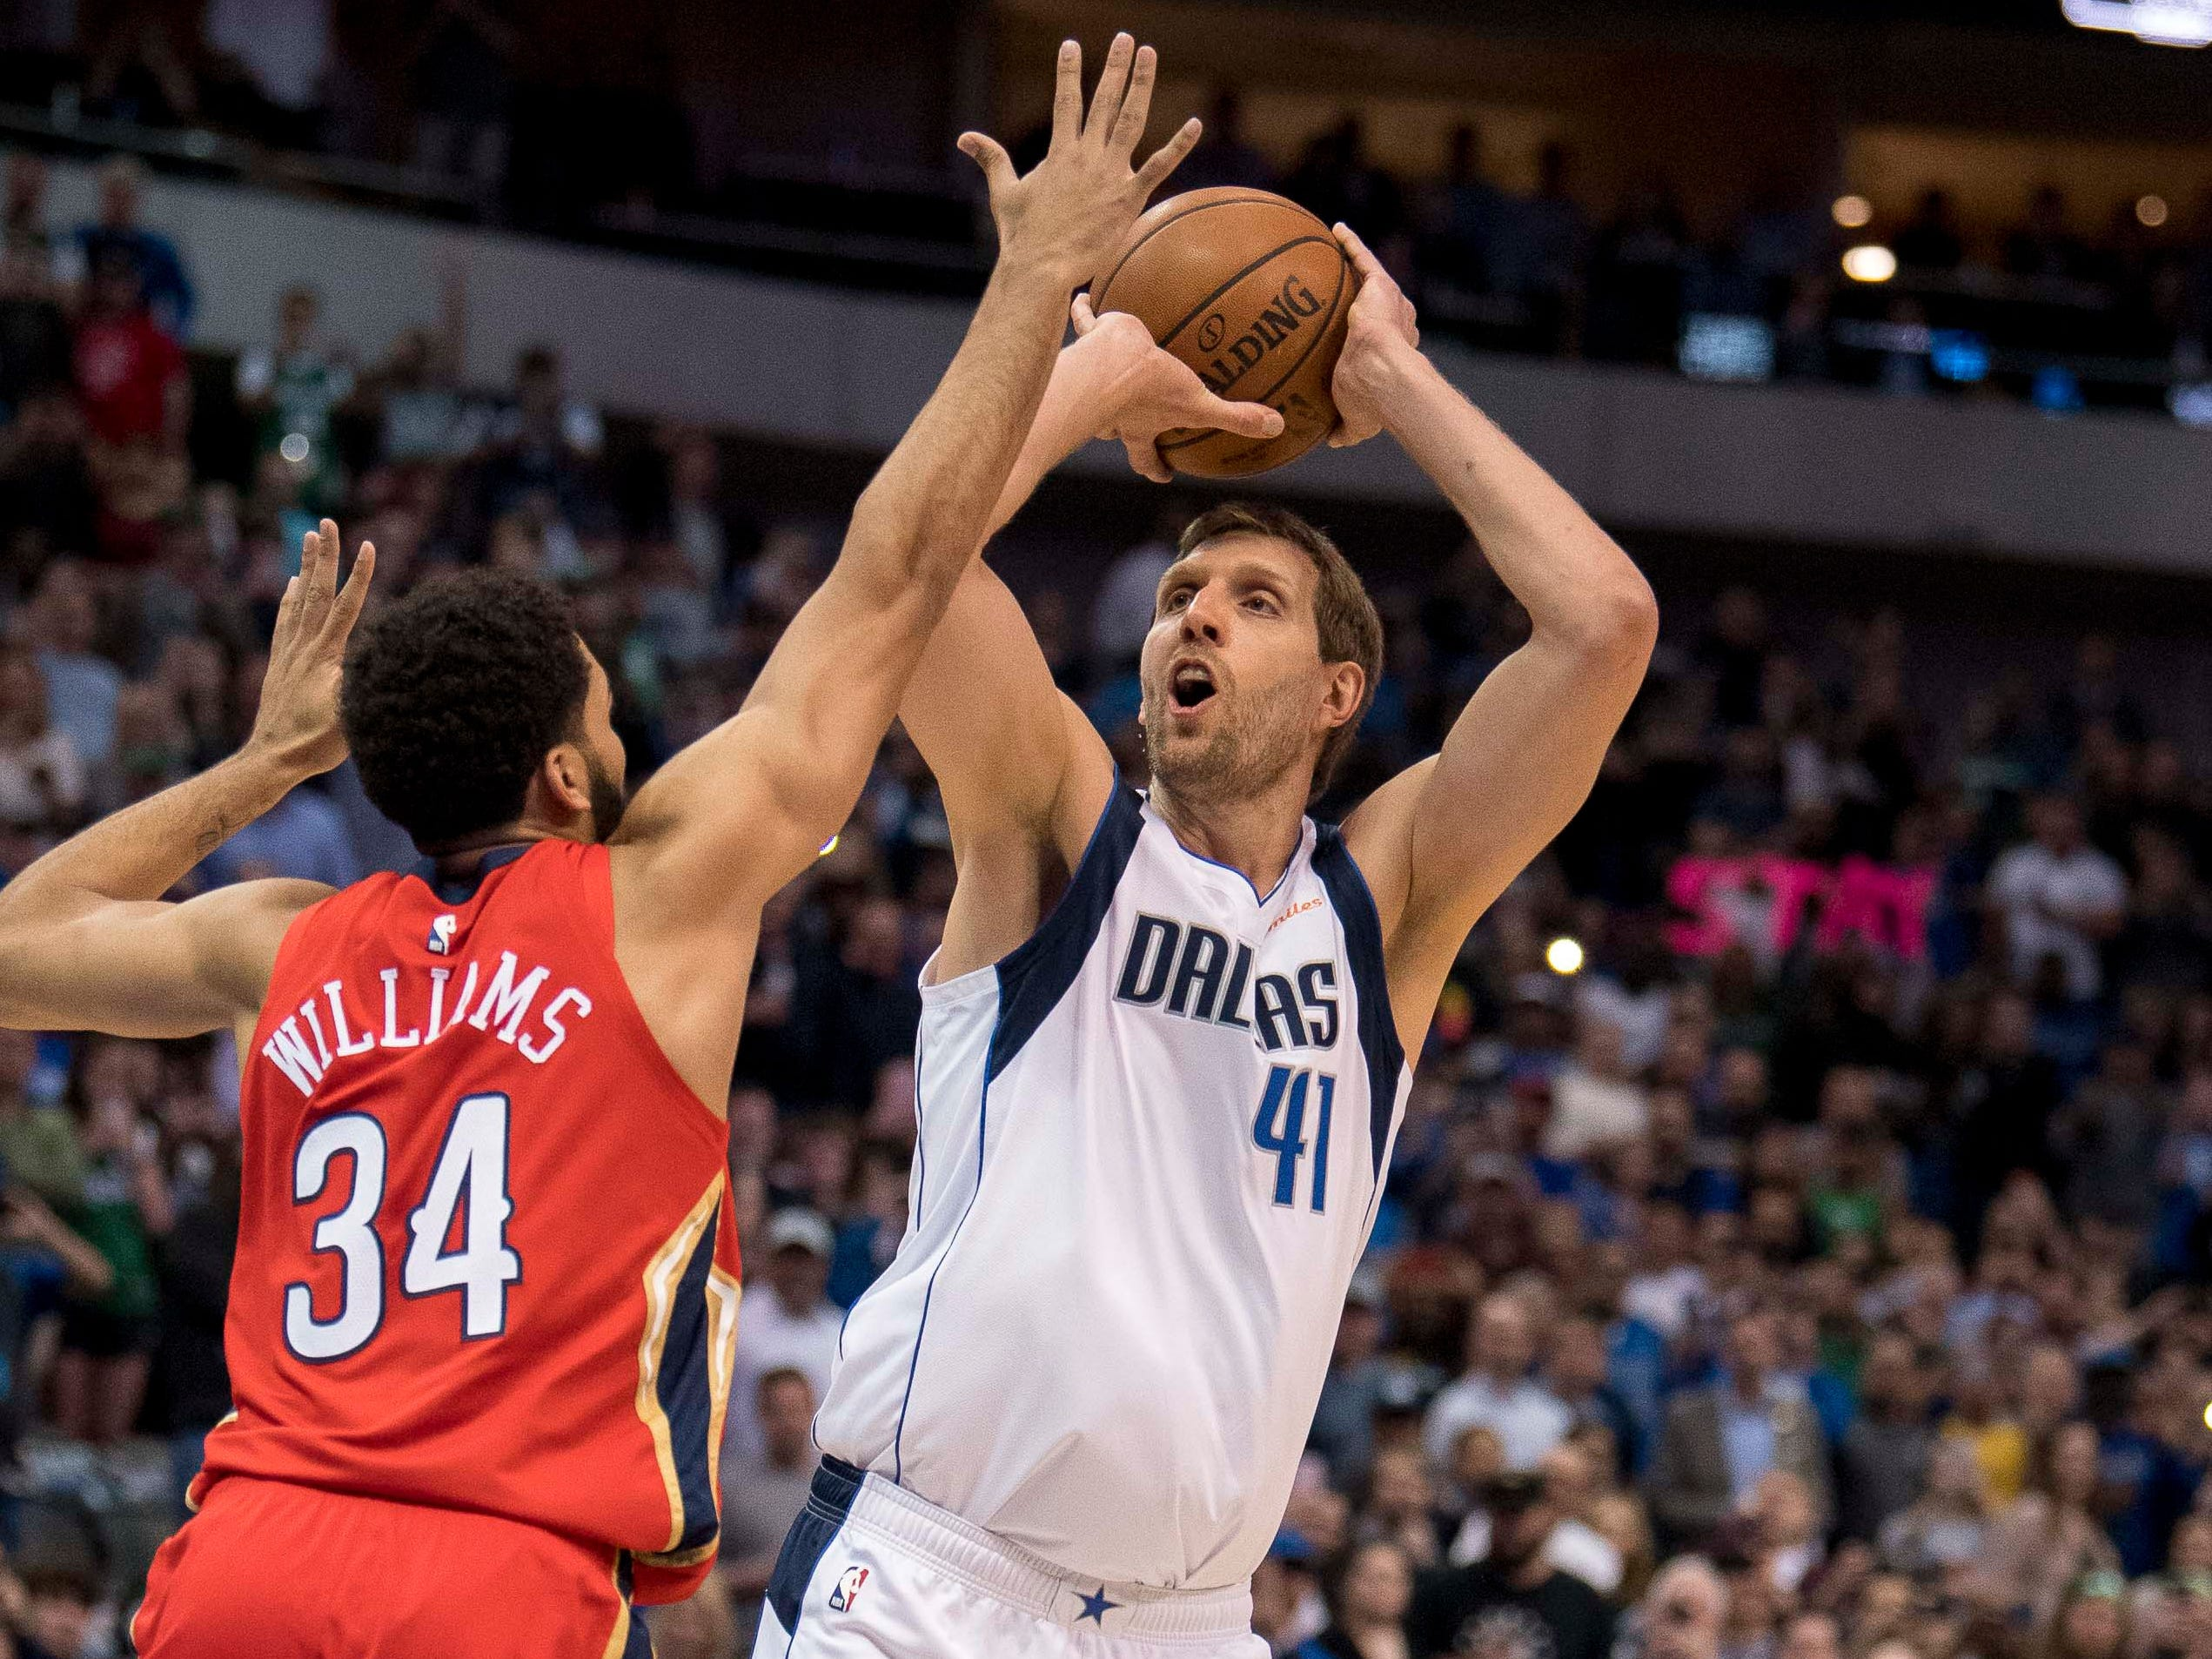 March 18: Mavericks forward Dirk Nowitzki (41) shoots and scores to pass Wilt Chamberlain for sixth place on the NBA's all-time scoring list.